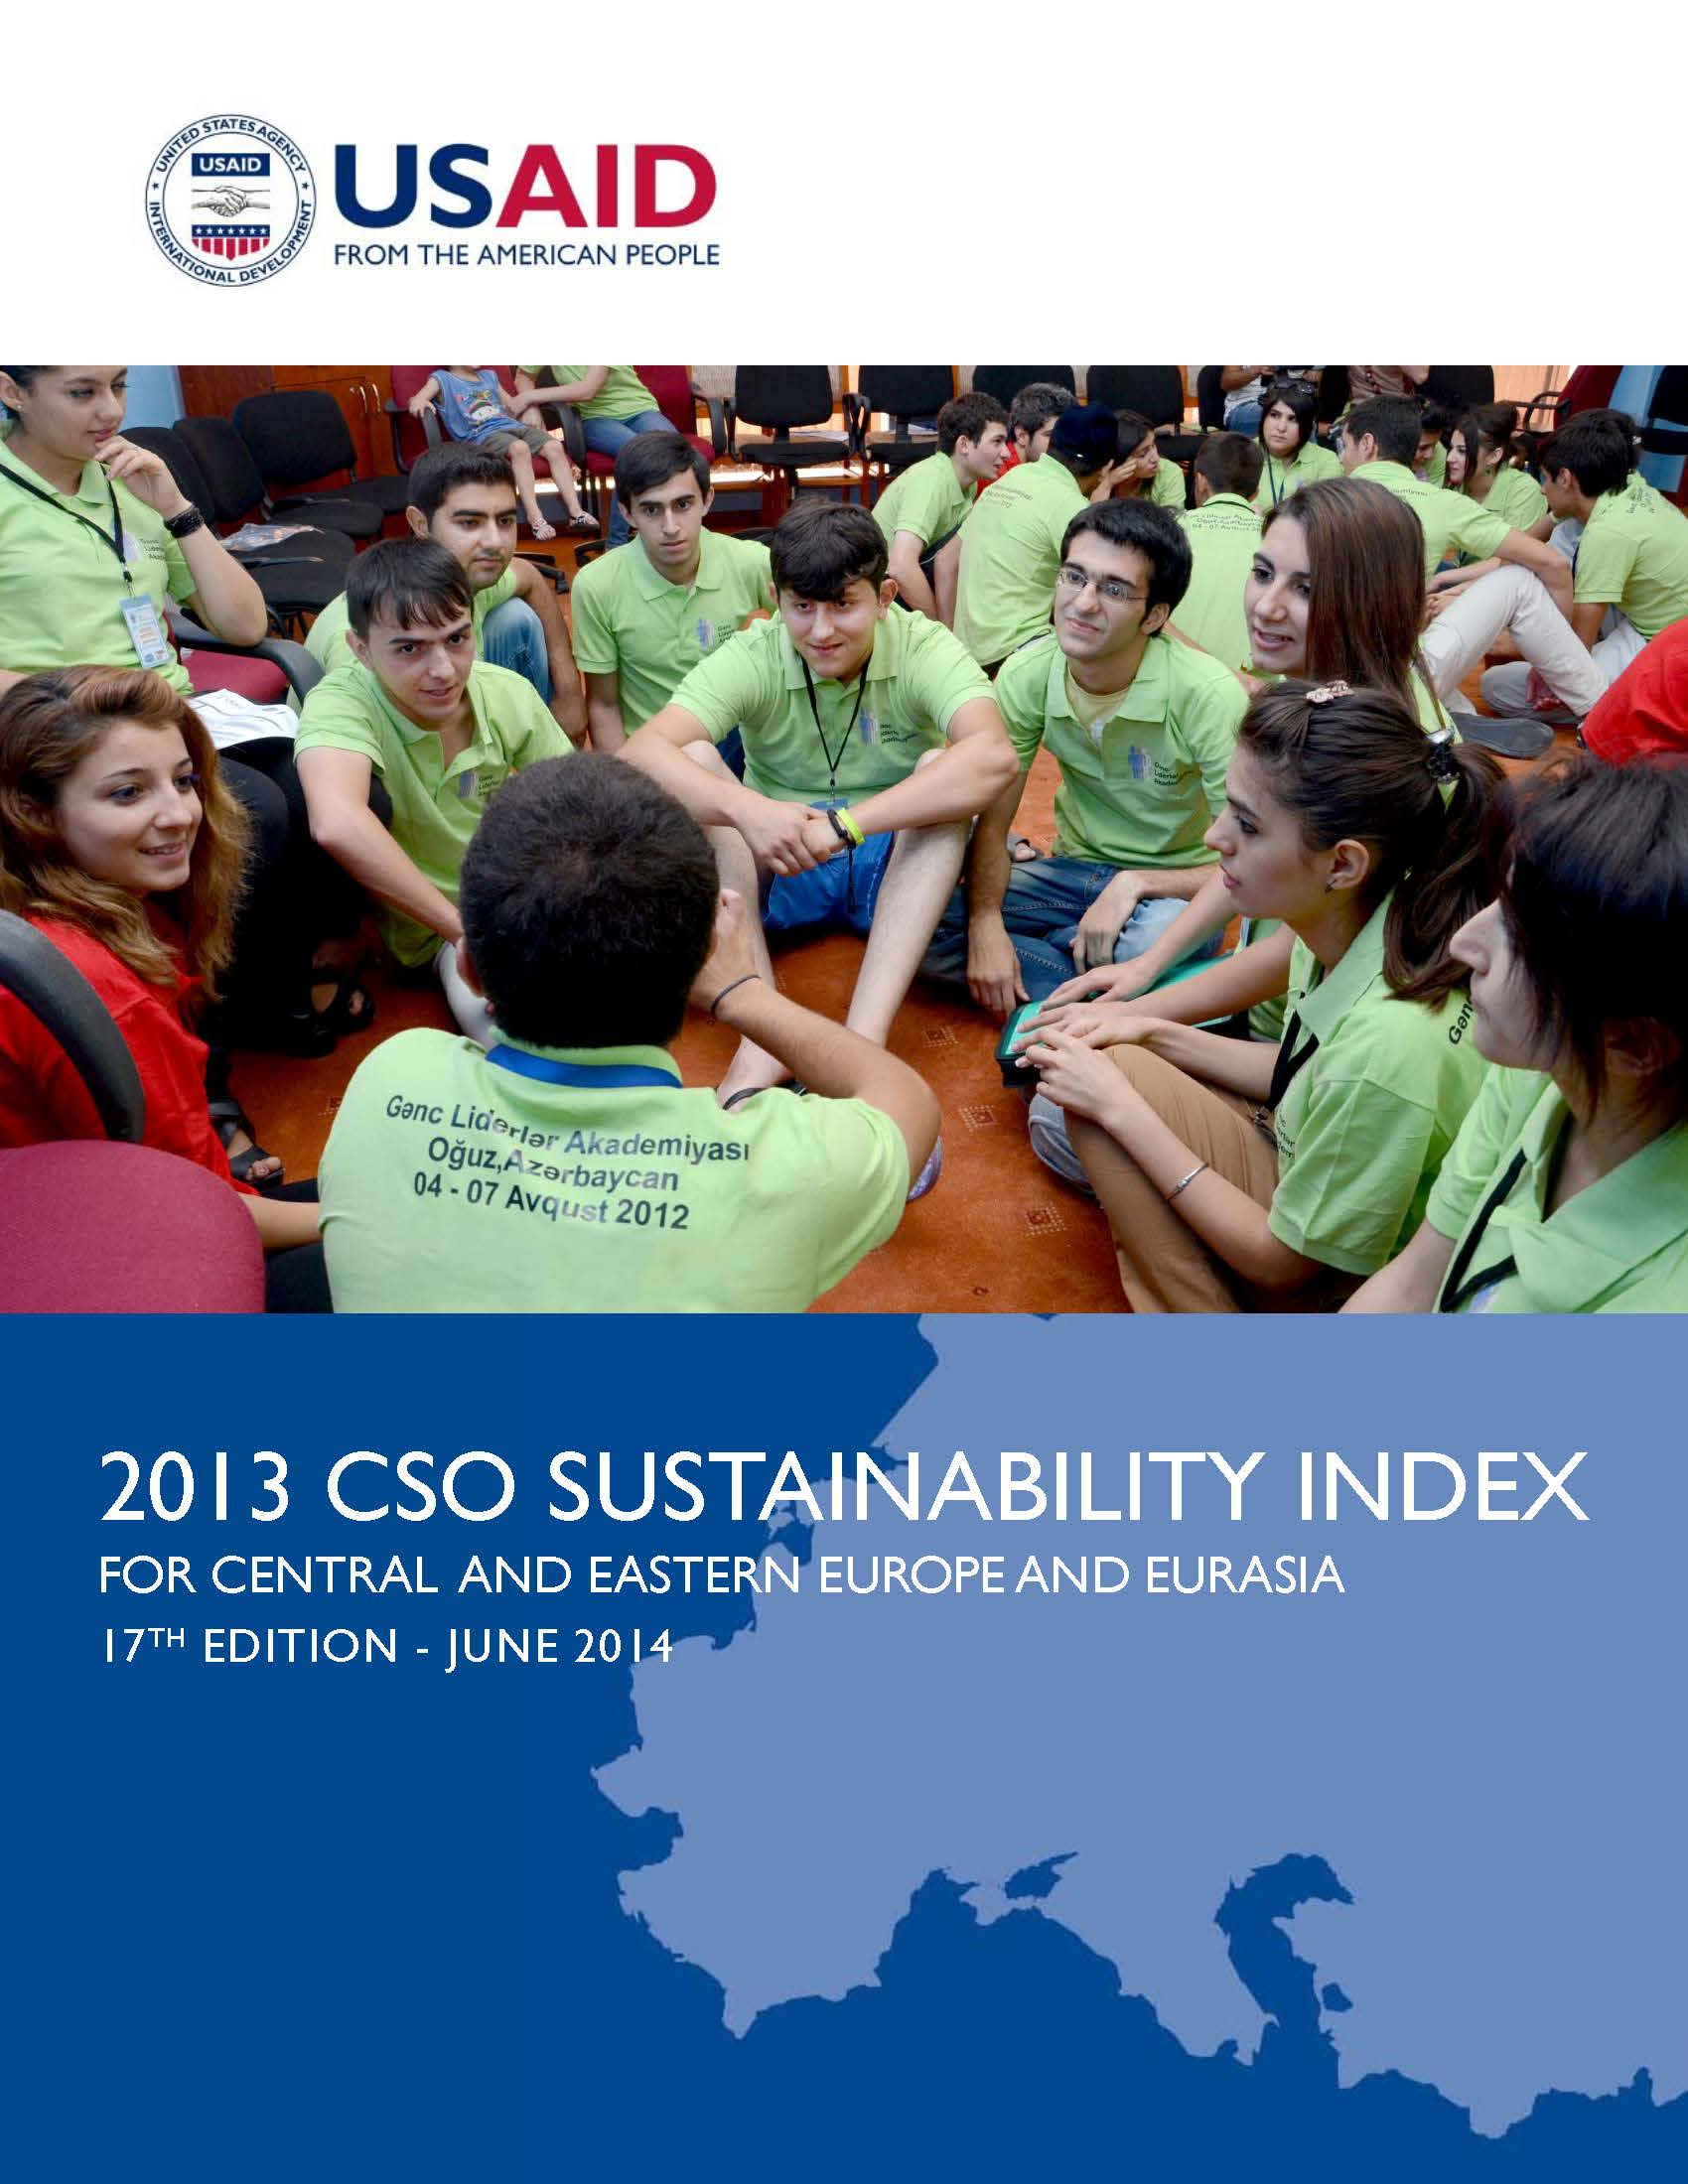 2013 CSO Sustainability Index for Central and Eastern Europe and Eurasia